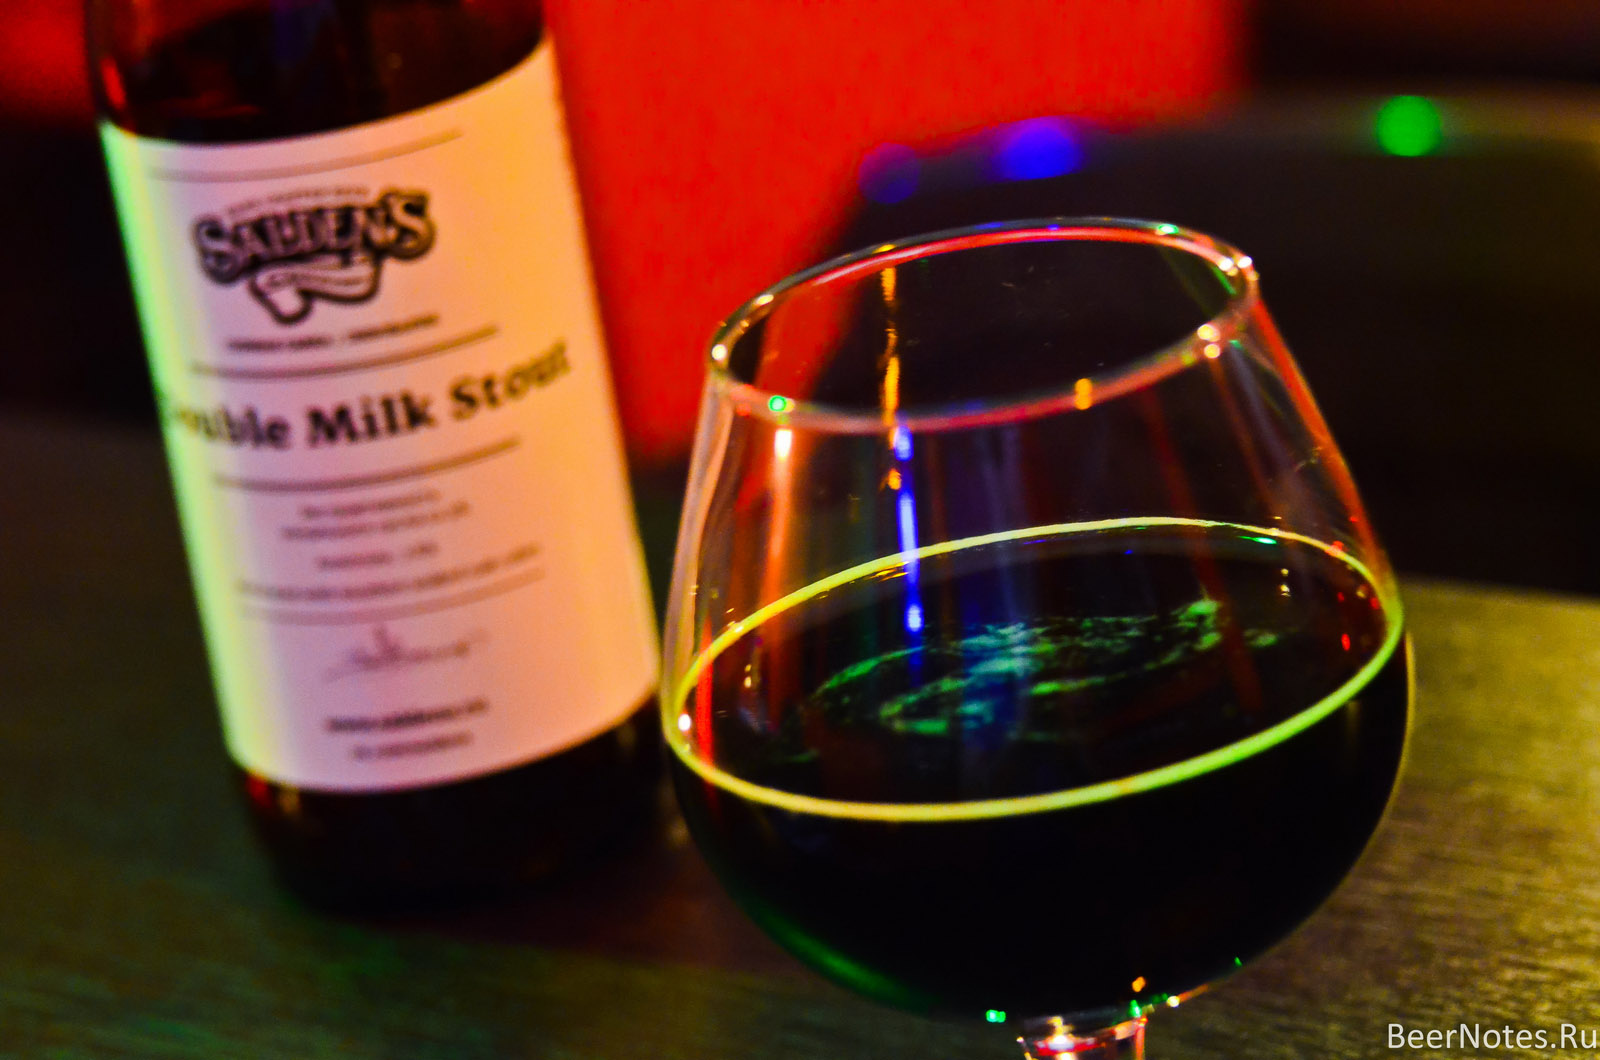 Salden's Double Milk Stout4